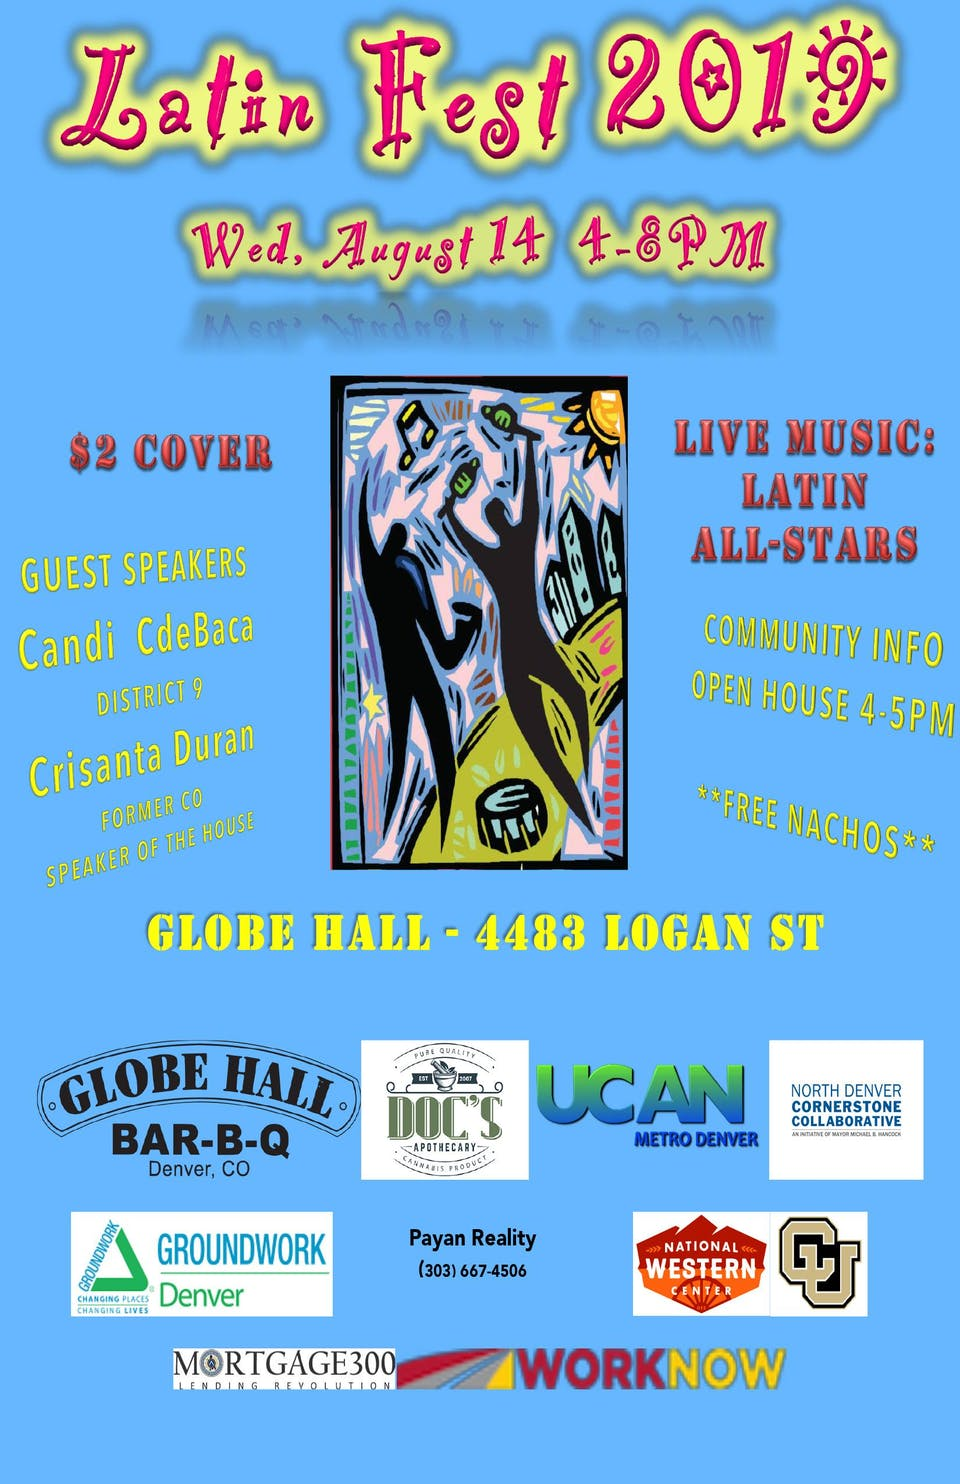 Latin Fest/ The Latin All-stars/ Free Community Event